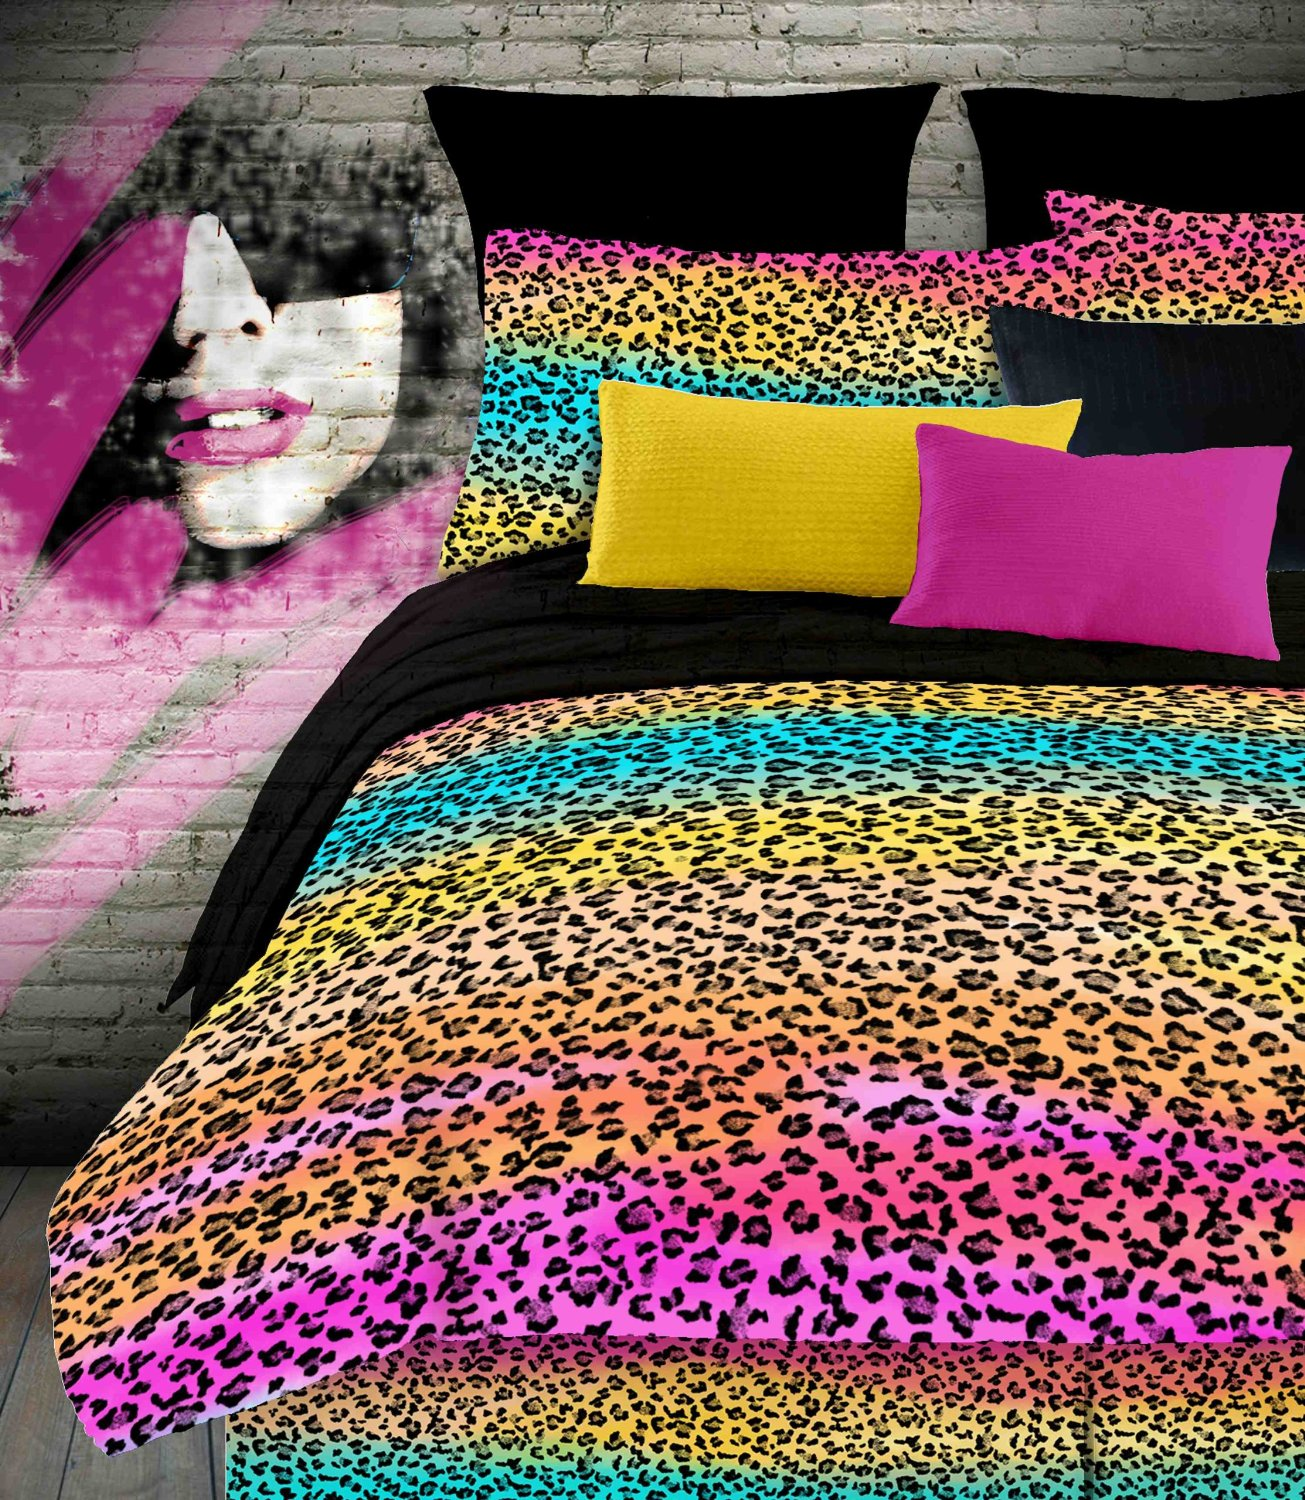 Bed sets for teenage girls zebra - Leopard Zebra Cheetah Rainbow Animal Print Bedding